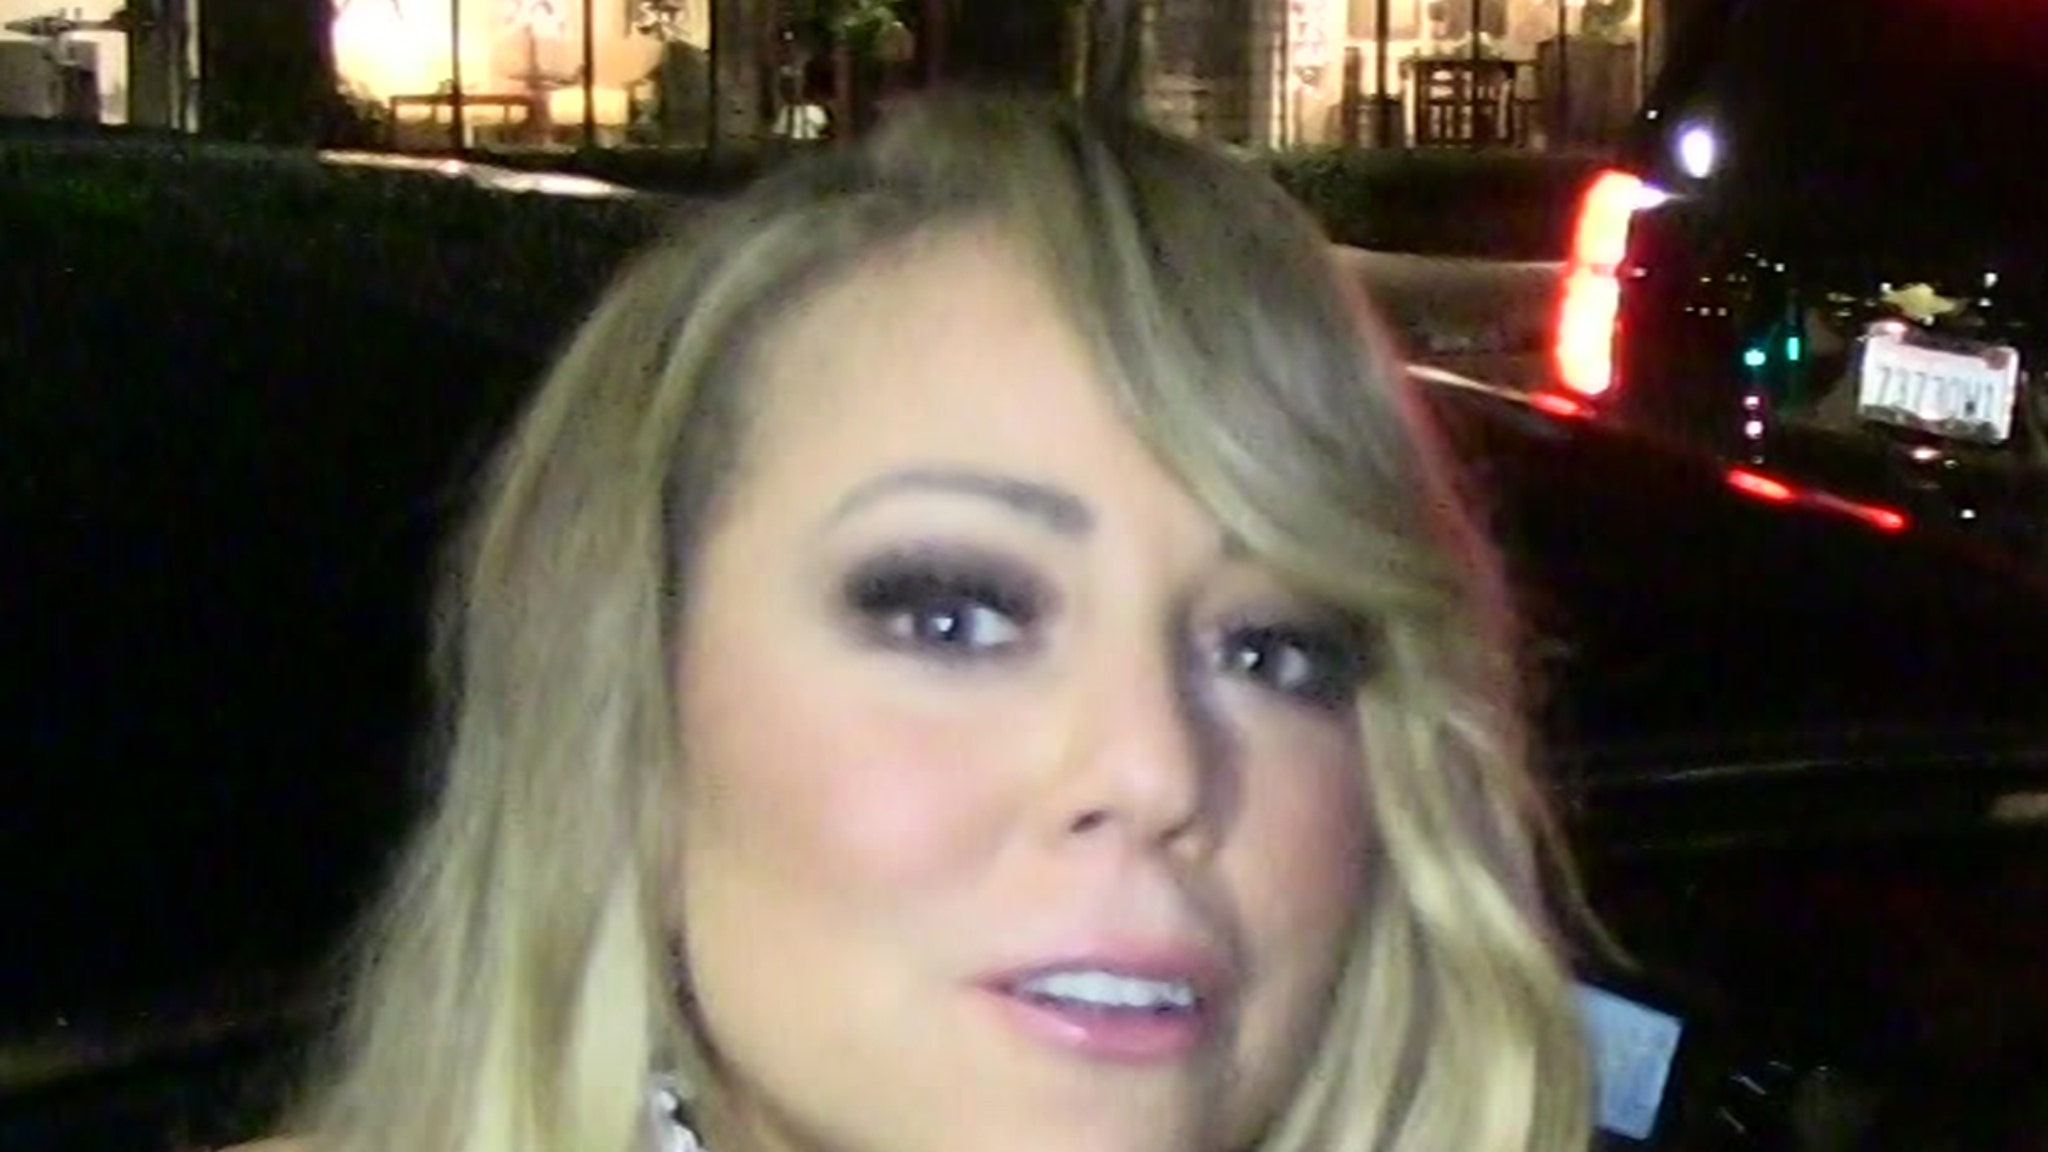 Mariah Carey Tells Singer Who Sampled 'Shake It Off' to Talk to Lawyer